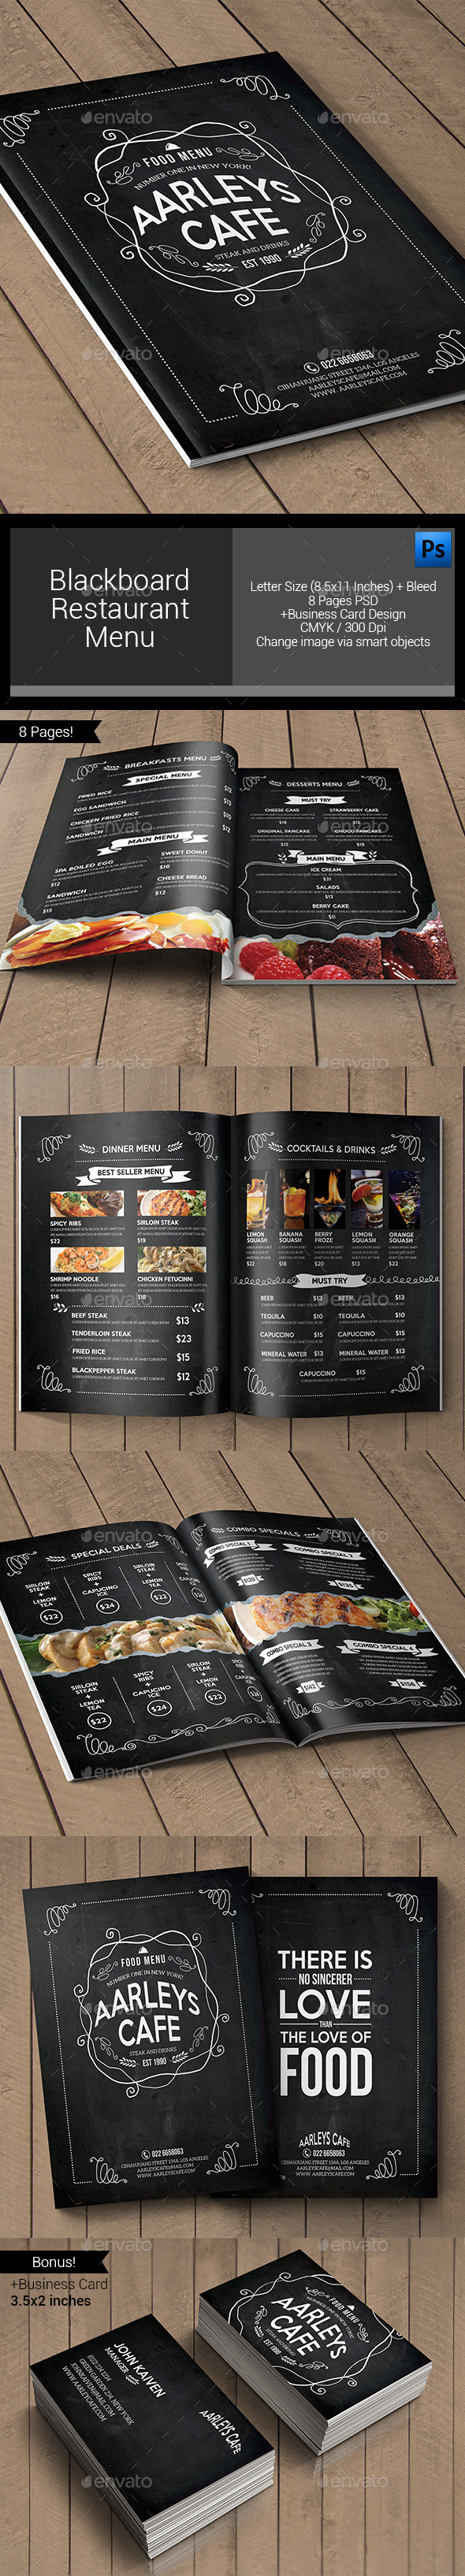 Blackboard Restaurant Menu